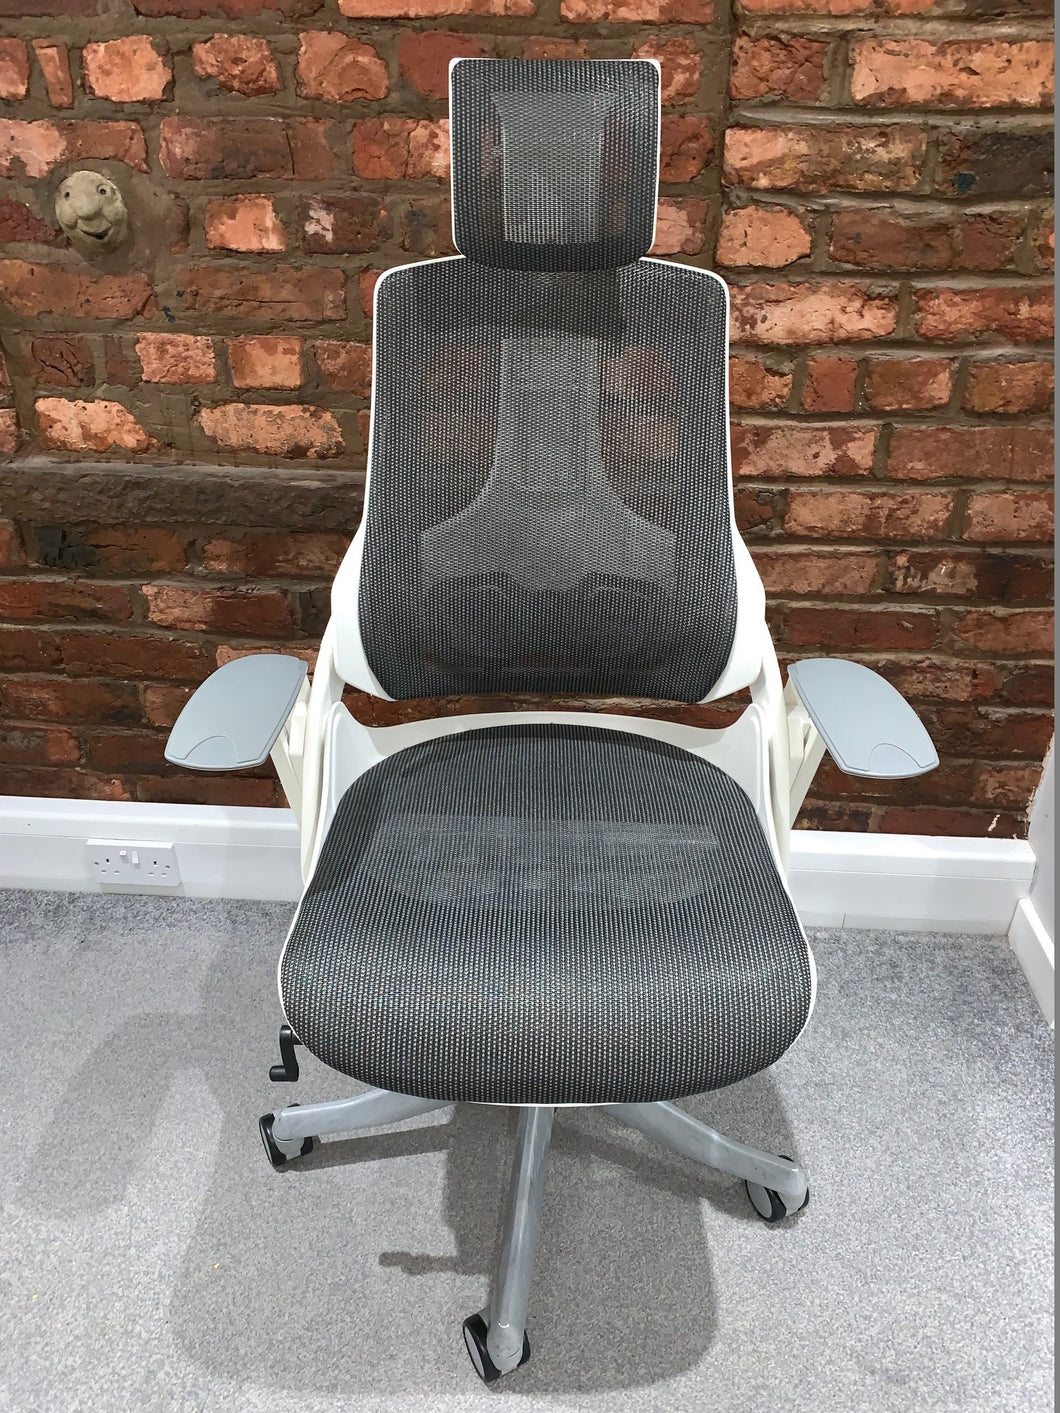 Merryfair Storm MK2 Ergonomic Office Chair - Flogit2us.com